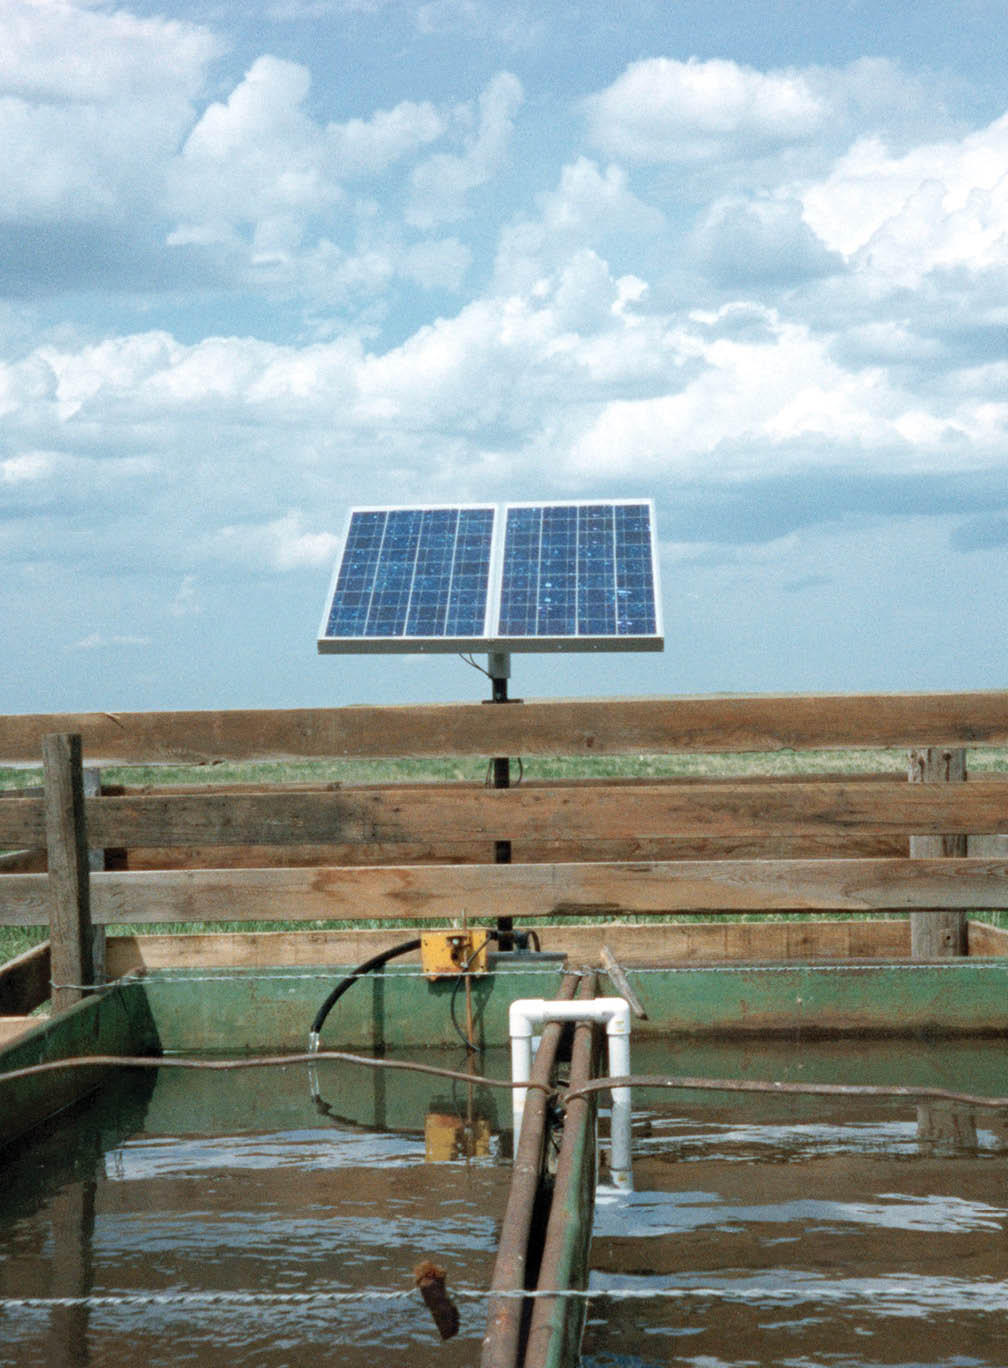 This Solar Powered Water Pumping Station Is Located On The Martin Ketterling Ranch North